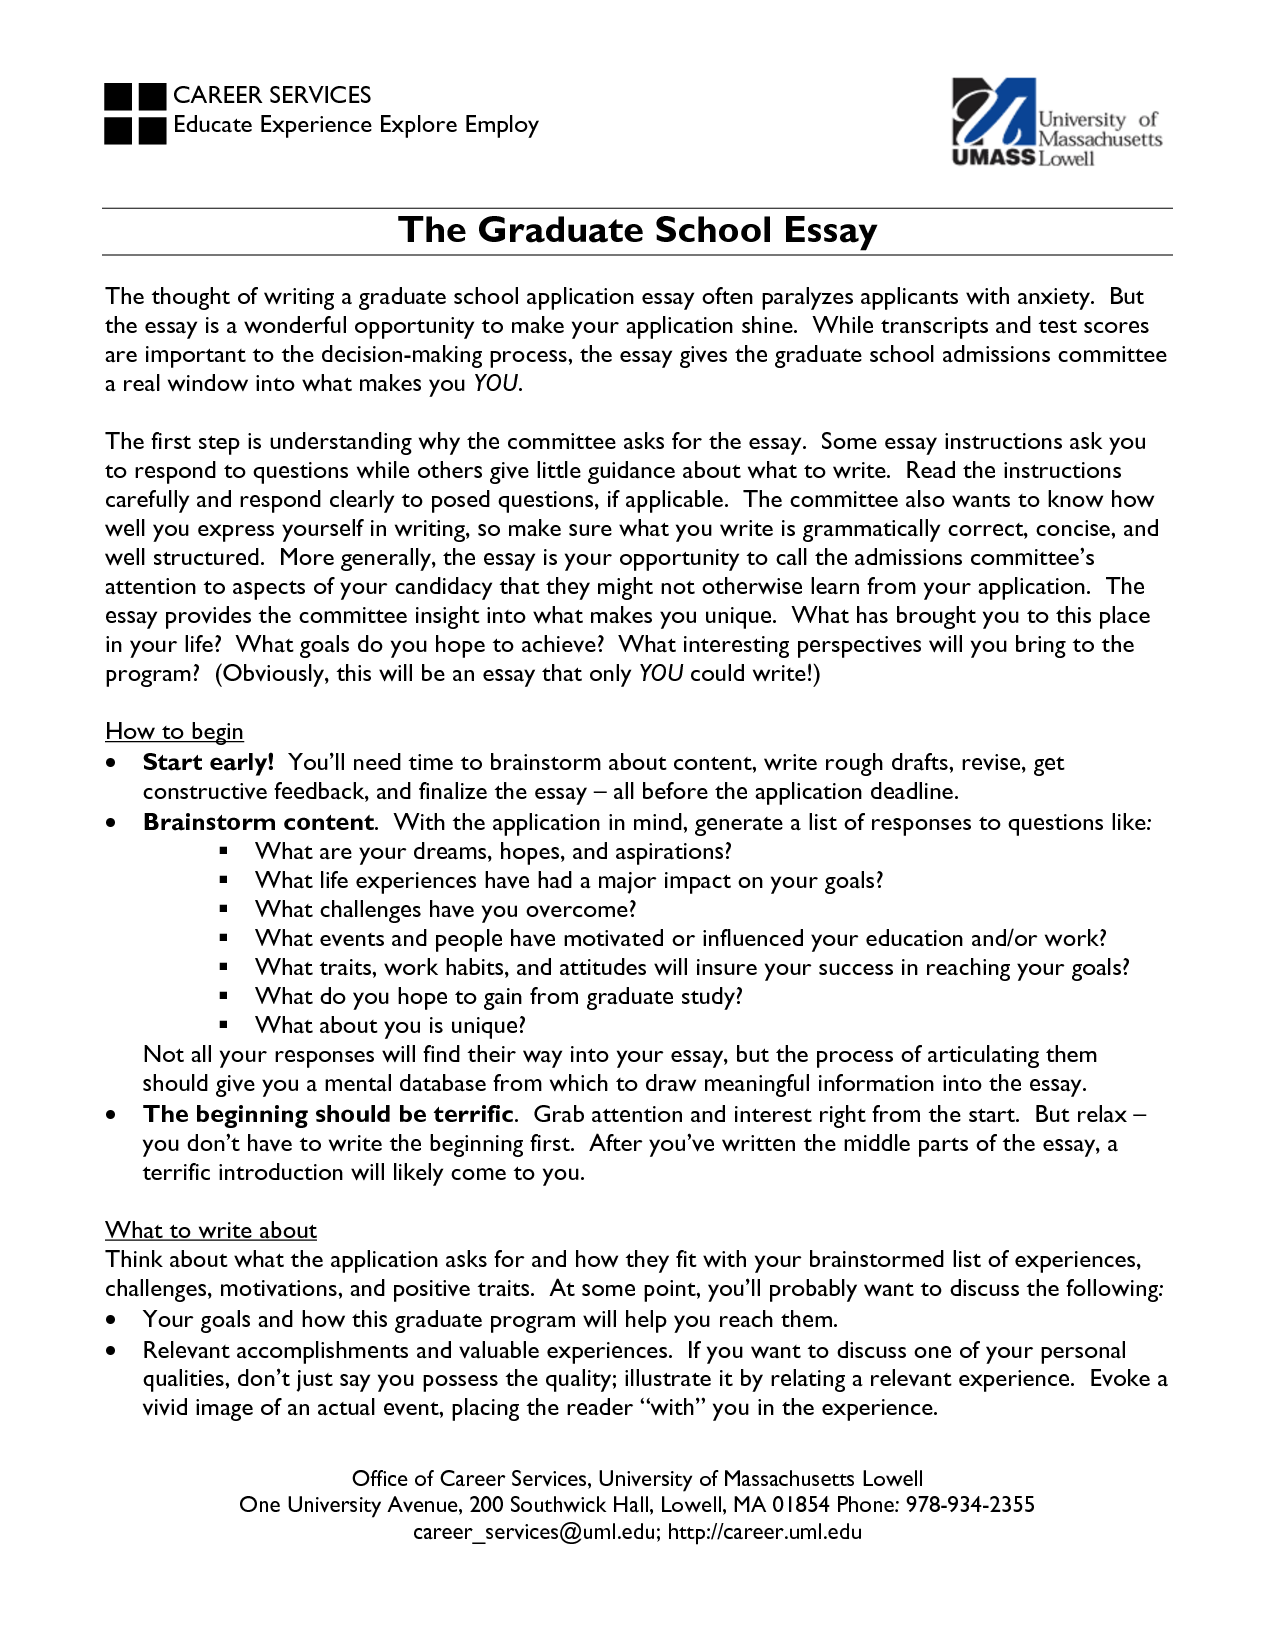 Graduate school application essay examples